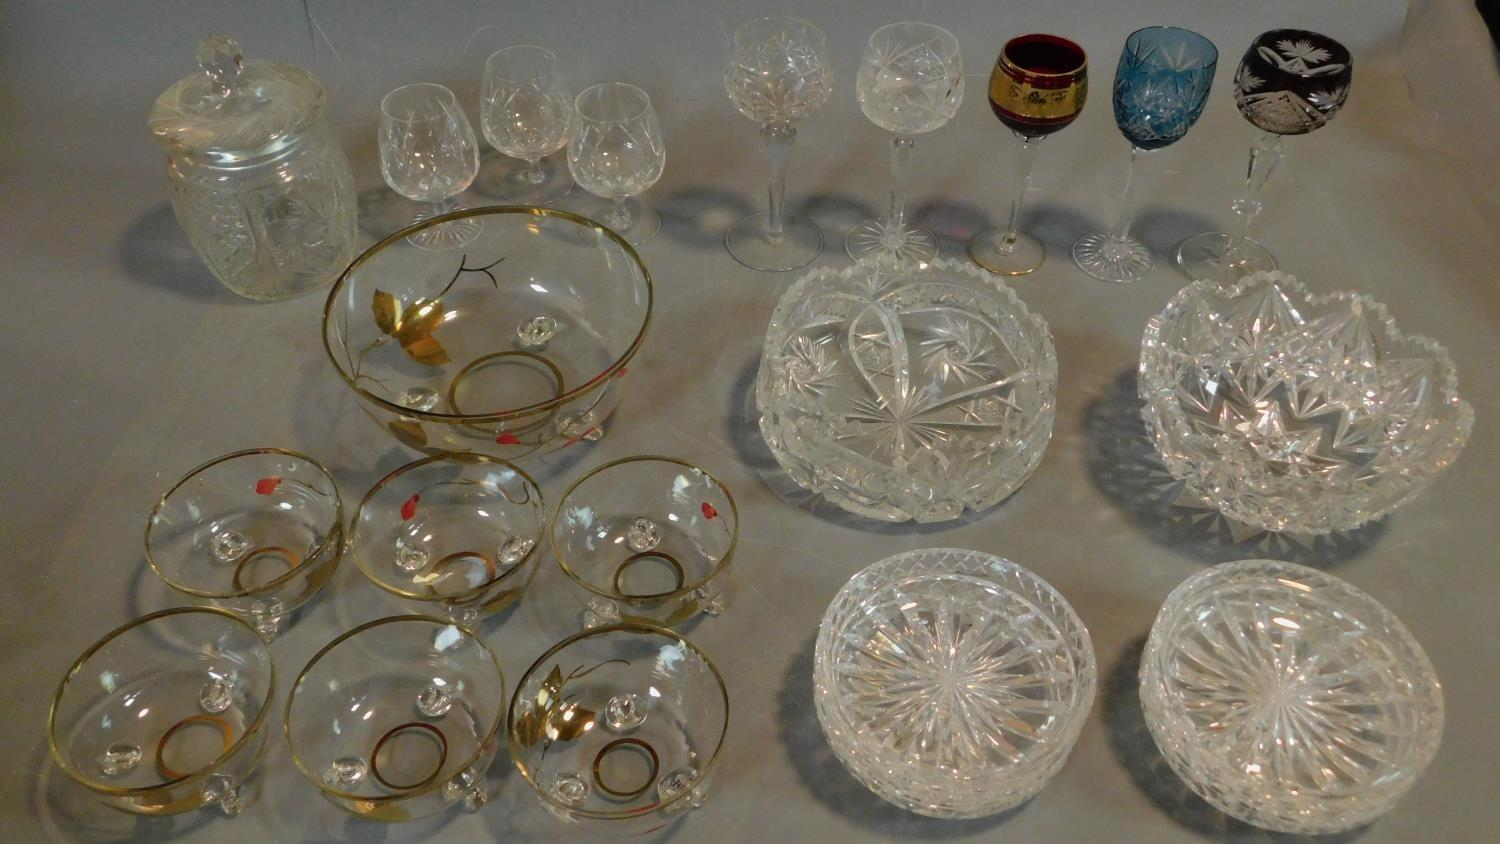 A vintage painted decorated dessert set and a collection of miscellaneous glass items.